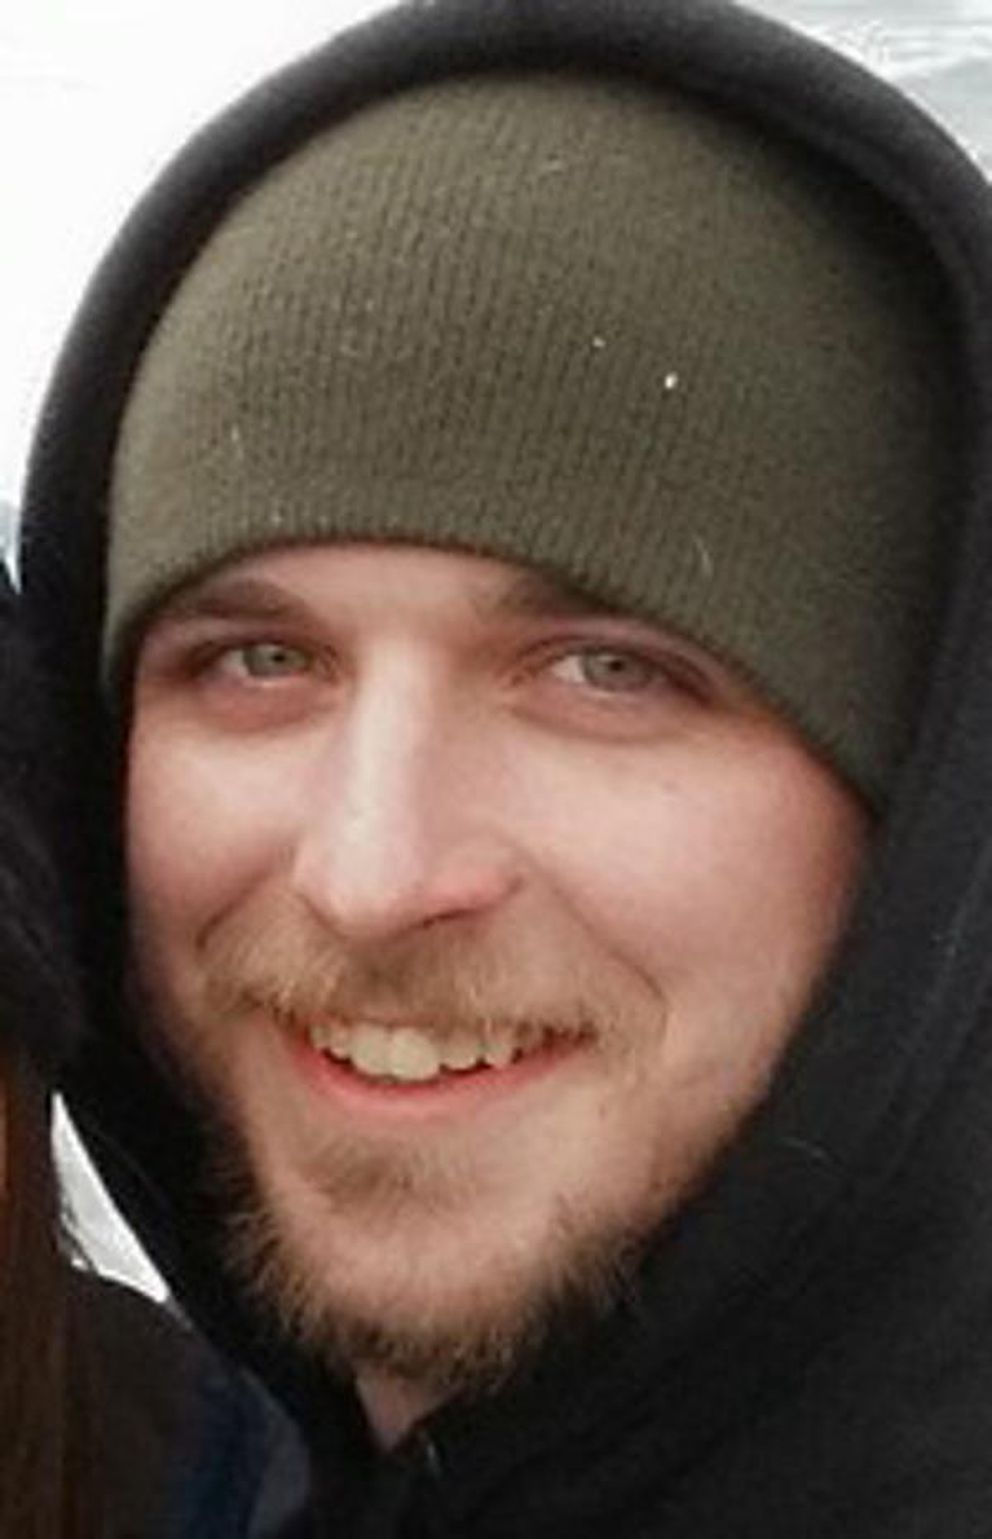 Hartman Construction worker Samuel Morgan, 23, was killed after a trench collapsed on him on June 16, 2015. (Courtesy Morgan family)